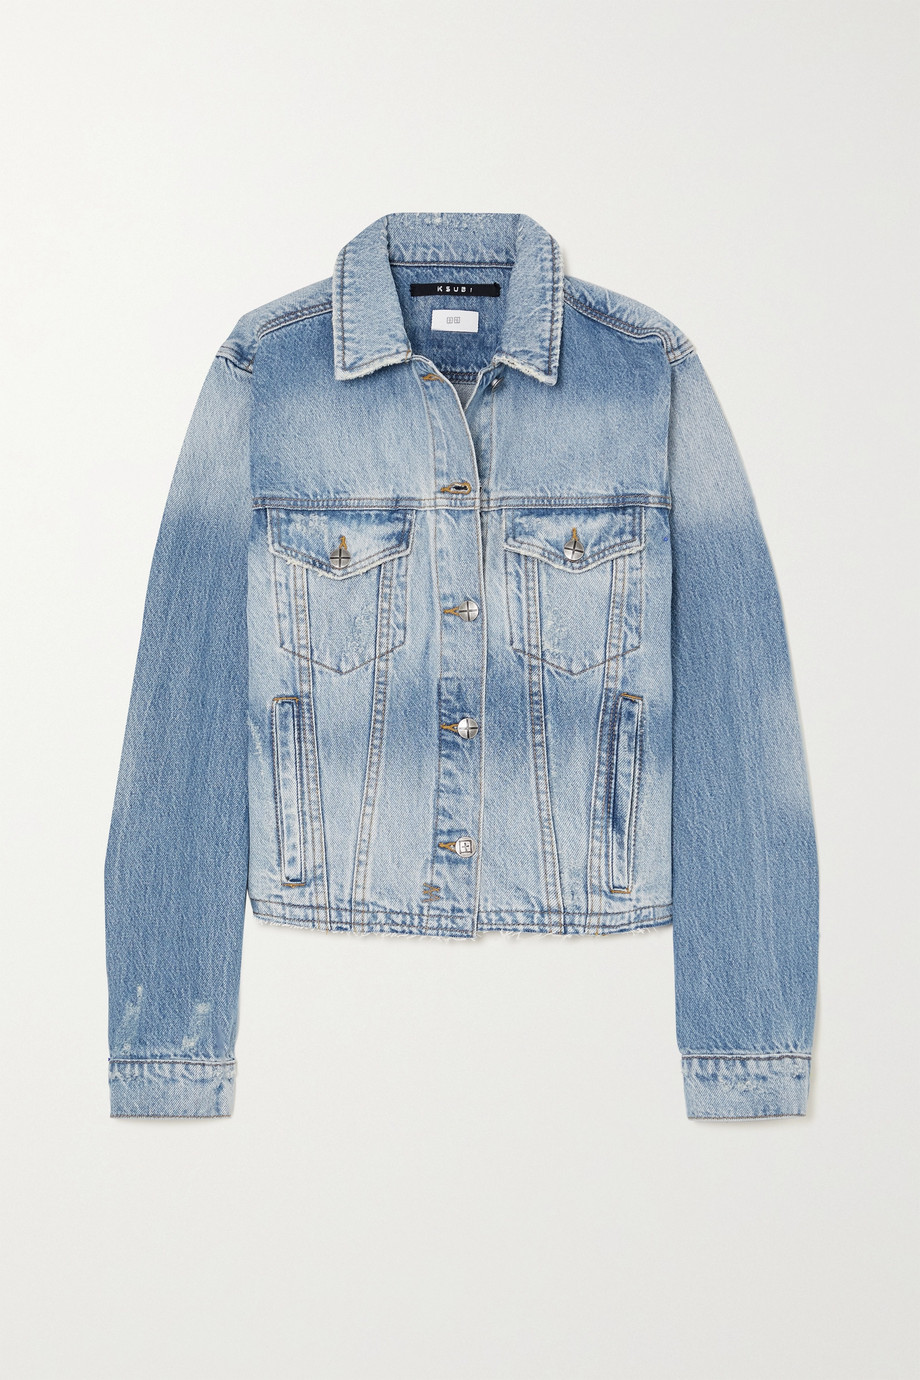 Ksubi Tour Jeansjacke in Distressed-Optik